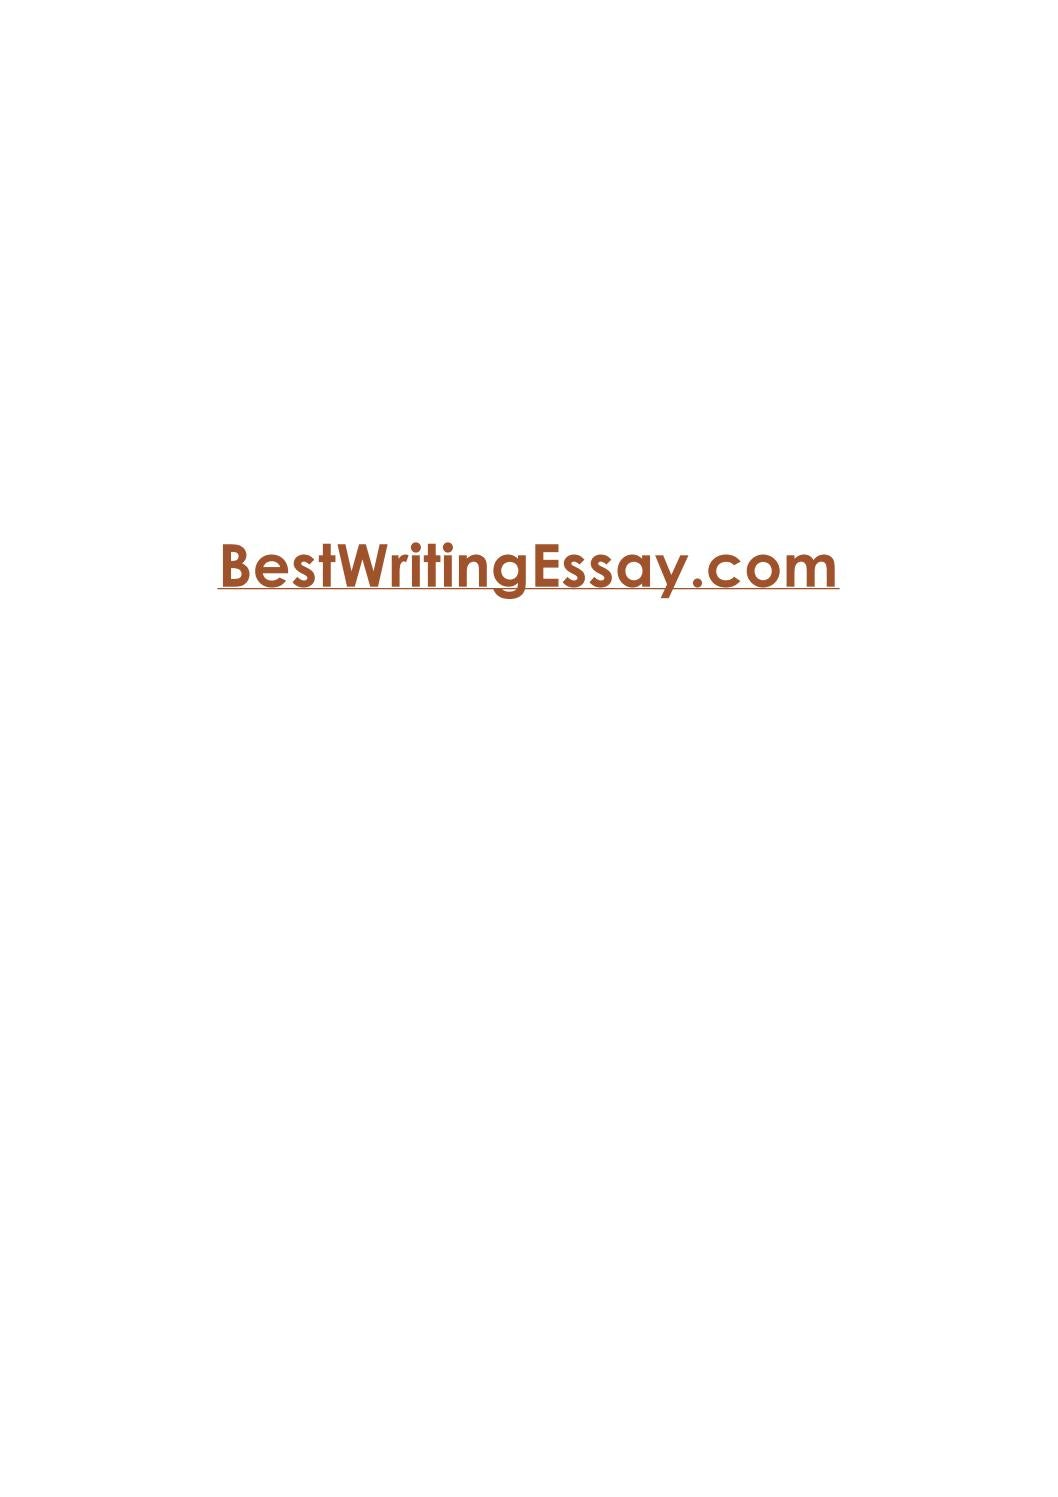 Example Of Literature Review Essay  Essay On Democracy also Titles For College Essays  Word Essay On Time Management By Crystalatxx  Issuu How To Write A Good Leadership Essay